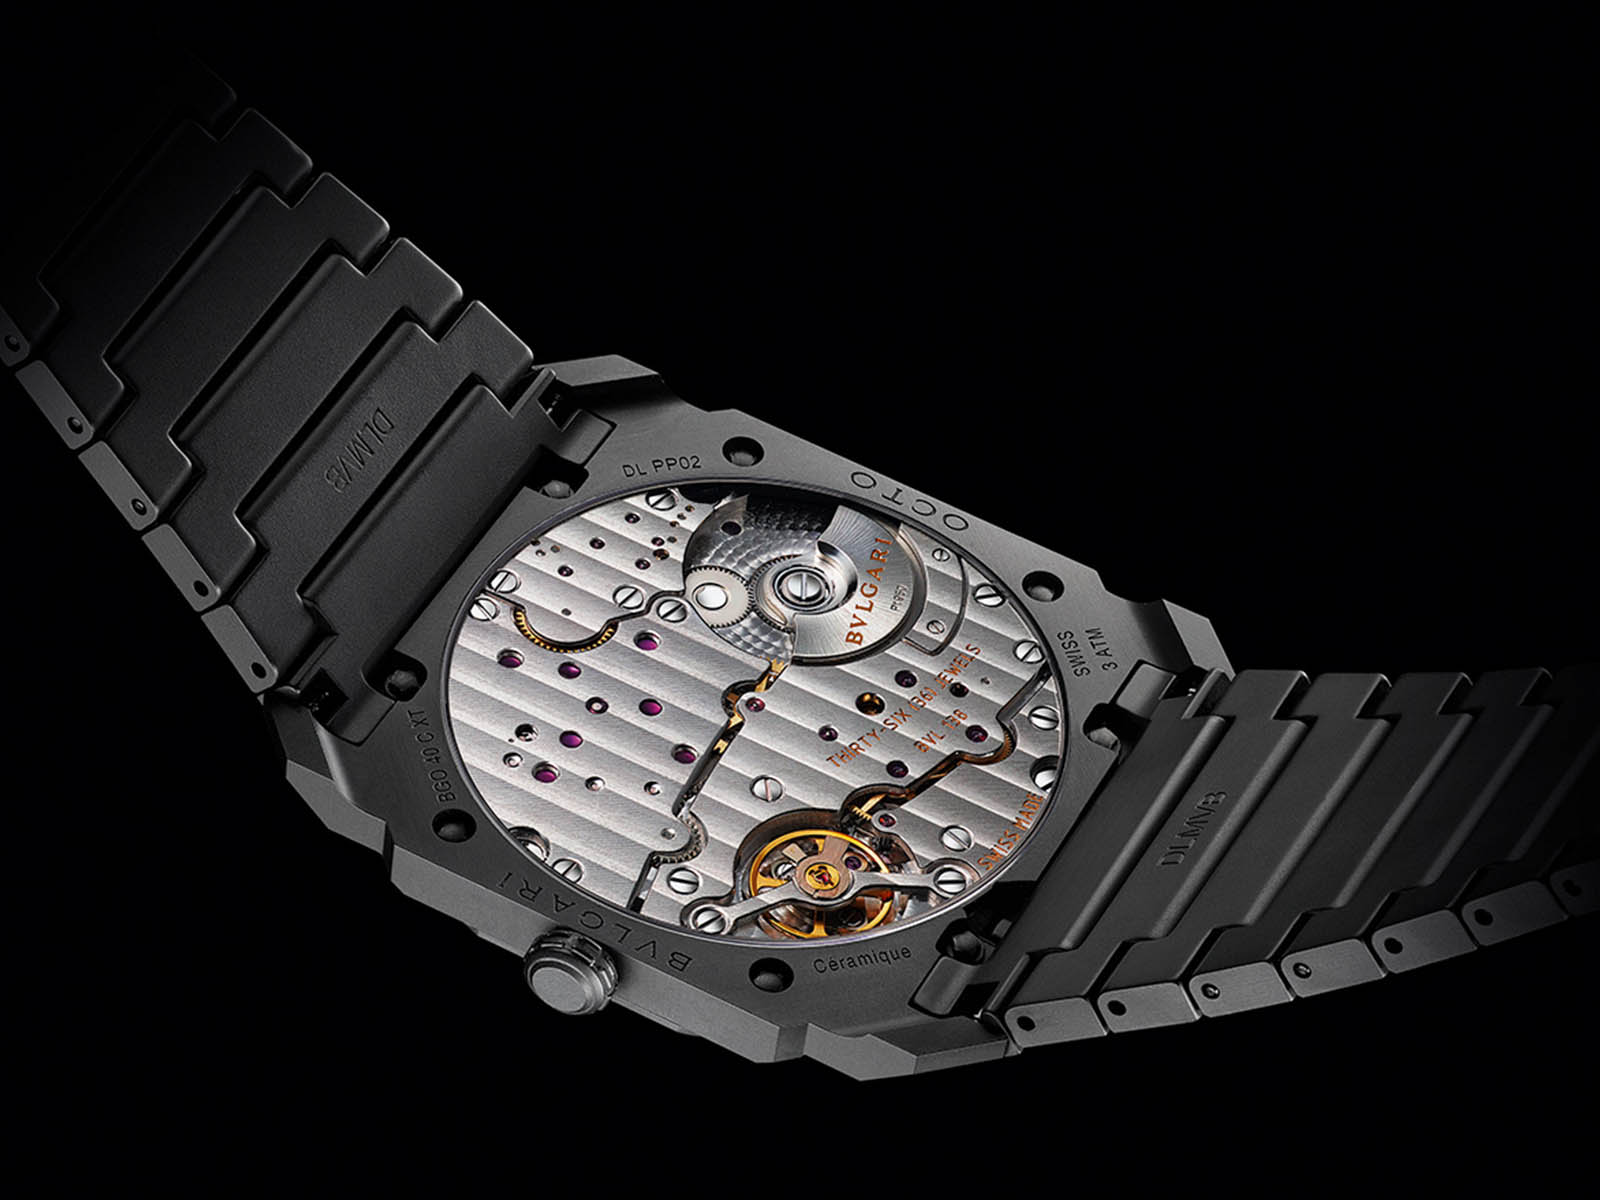 bulgari-octo-finissimo-automatic-ceramic-2.jpg